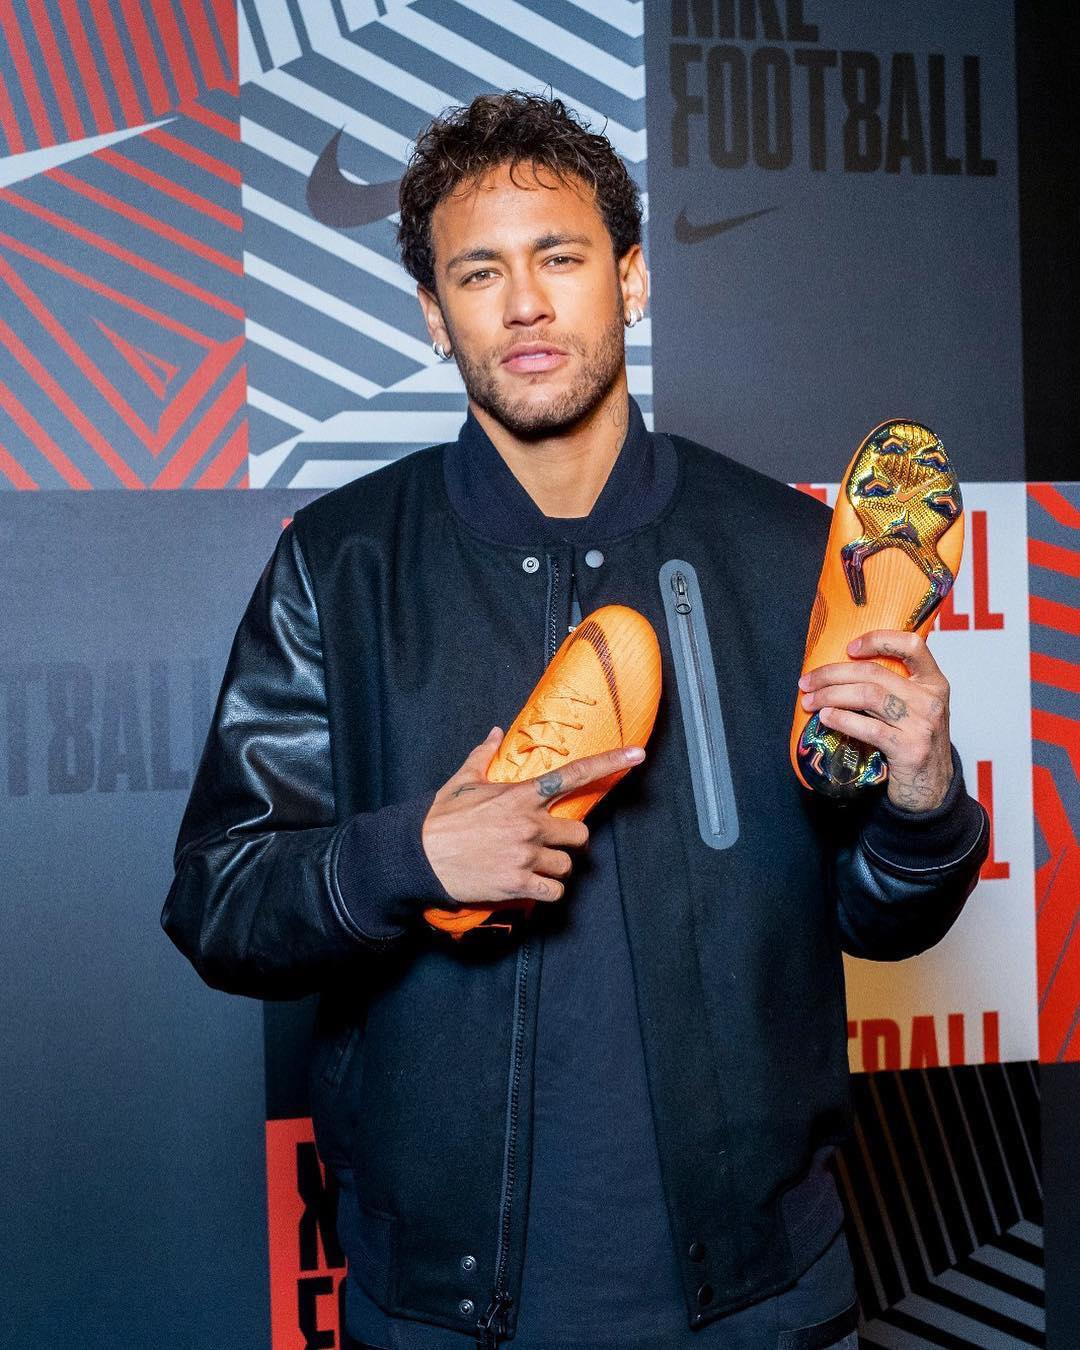 Neymar Jr. Brand Endorsement Deals Promotions Ambassador TVC Advertising Sponsorship Partnership Nike